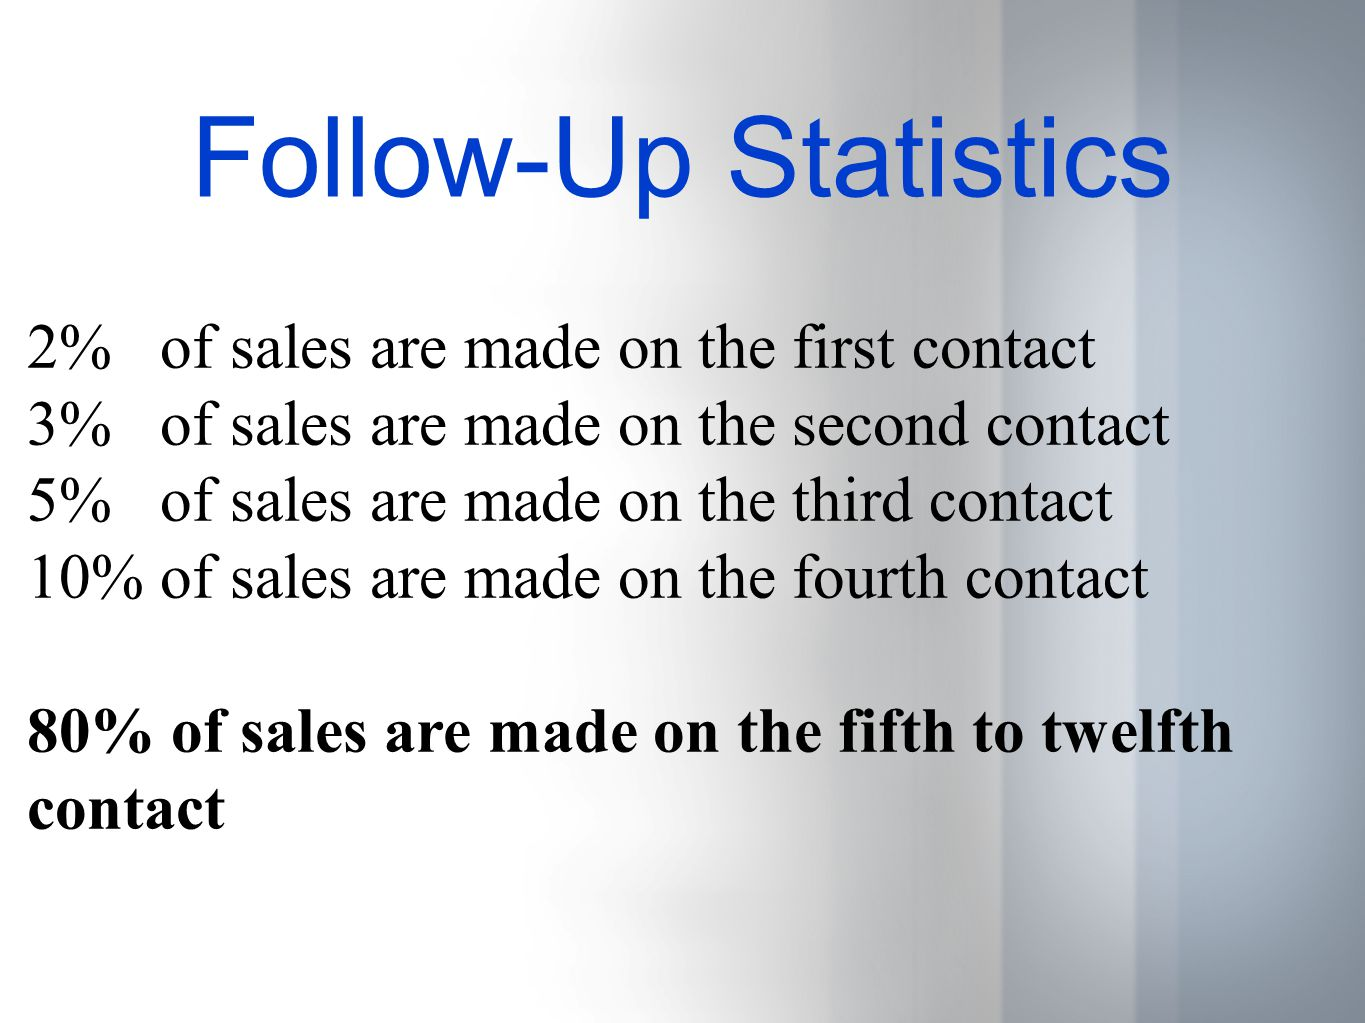 Follow-Up Statistics 2% of sales are made on the first contact 3% of sales are made on the second contact 5% of sales are made on the third contact 10% of sales are made on the fourth contact 80% of sales are made on the fifth to twelfth contact